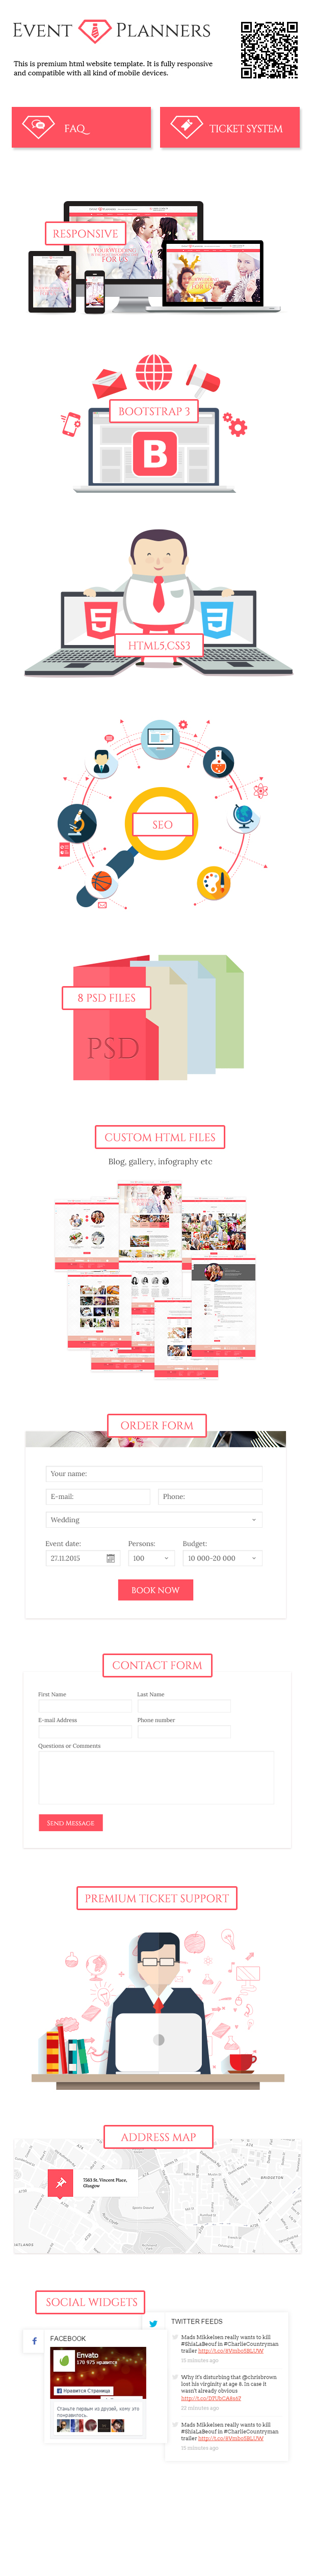 Presentation for Event Planners html5 website template